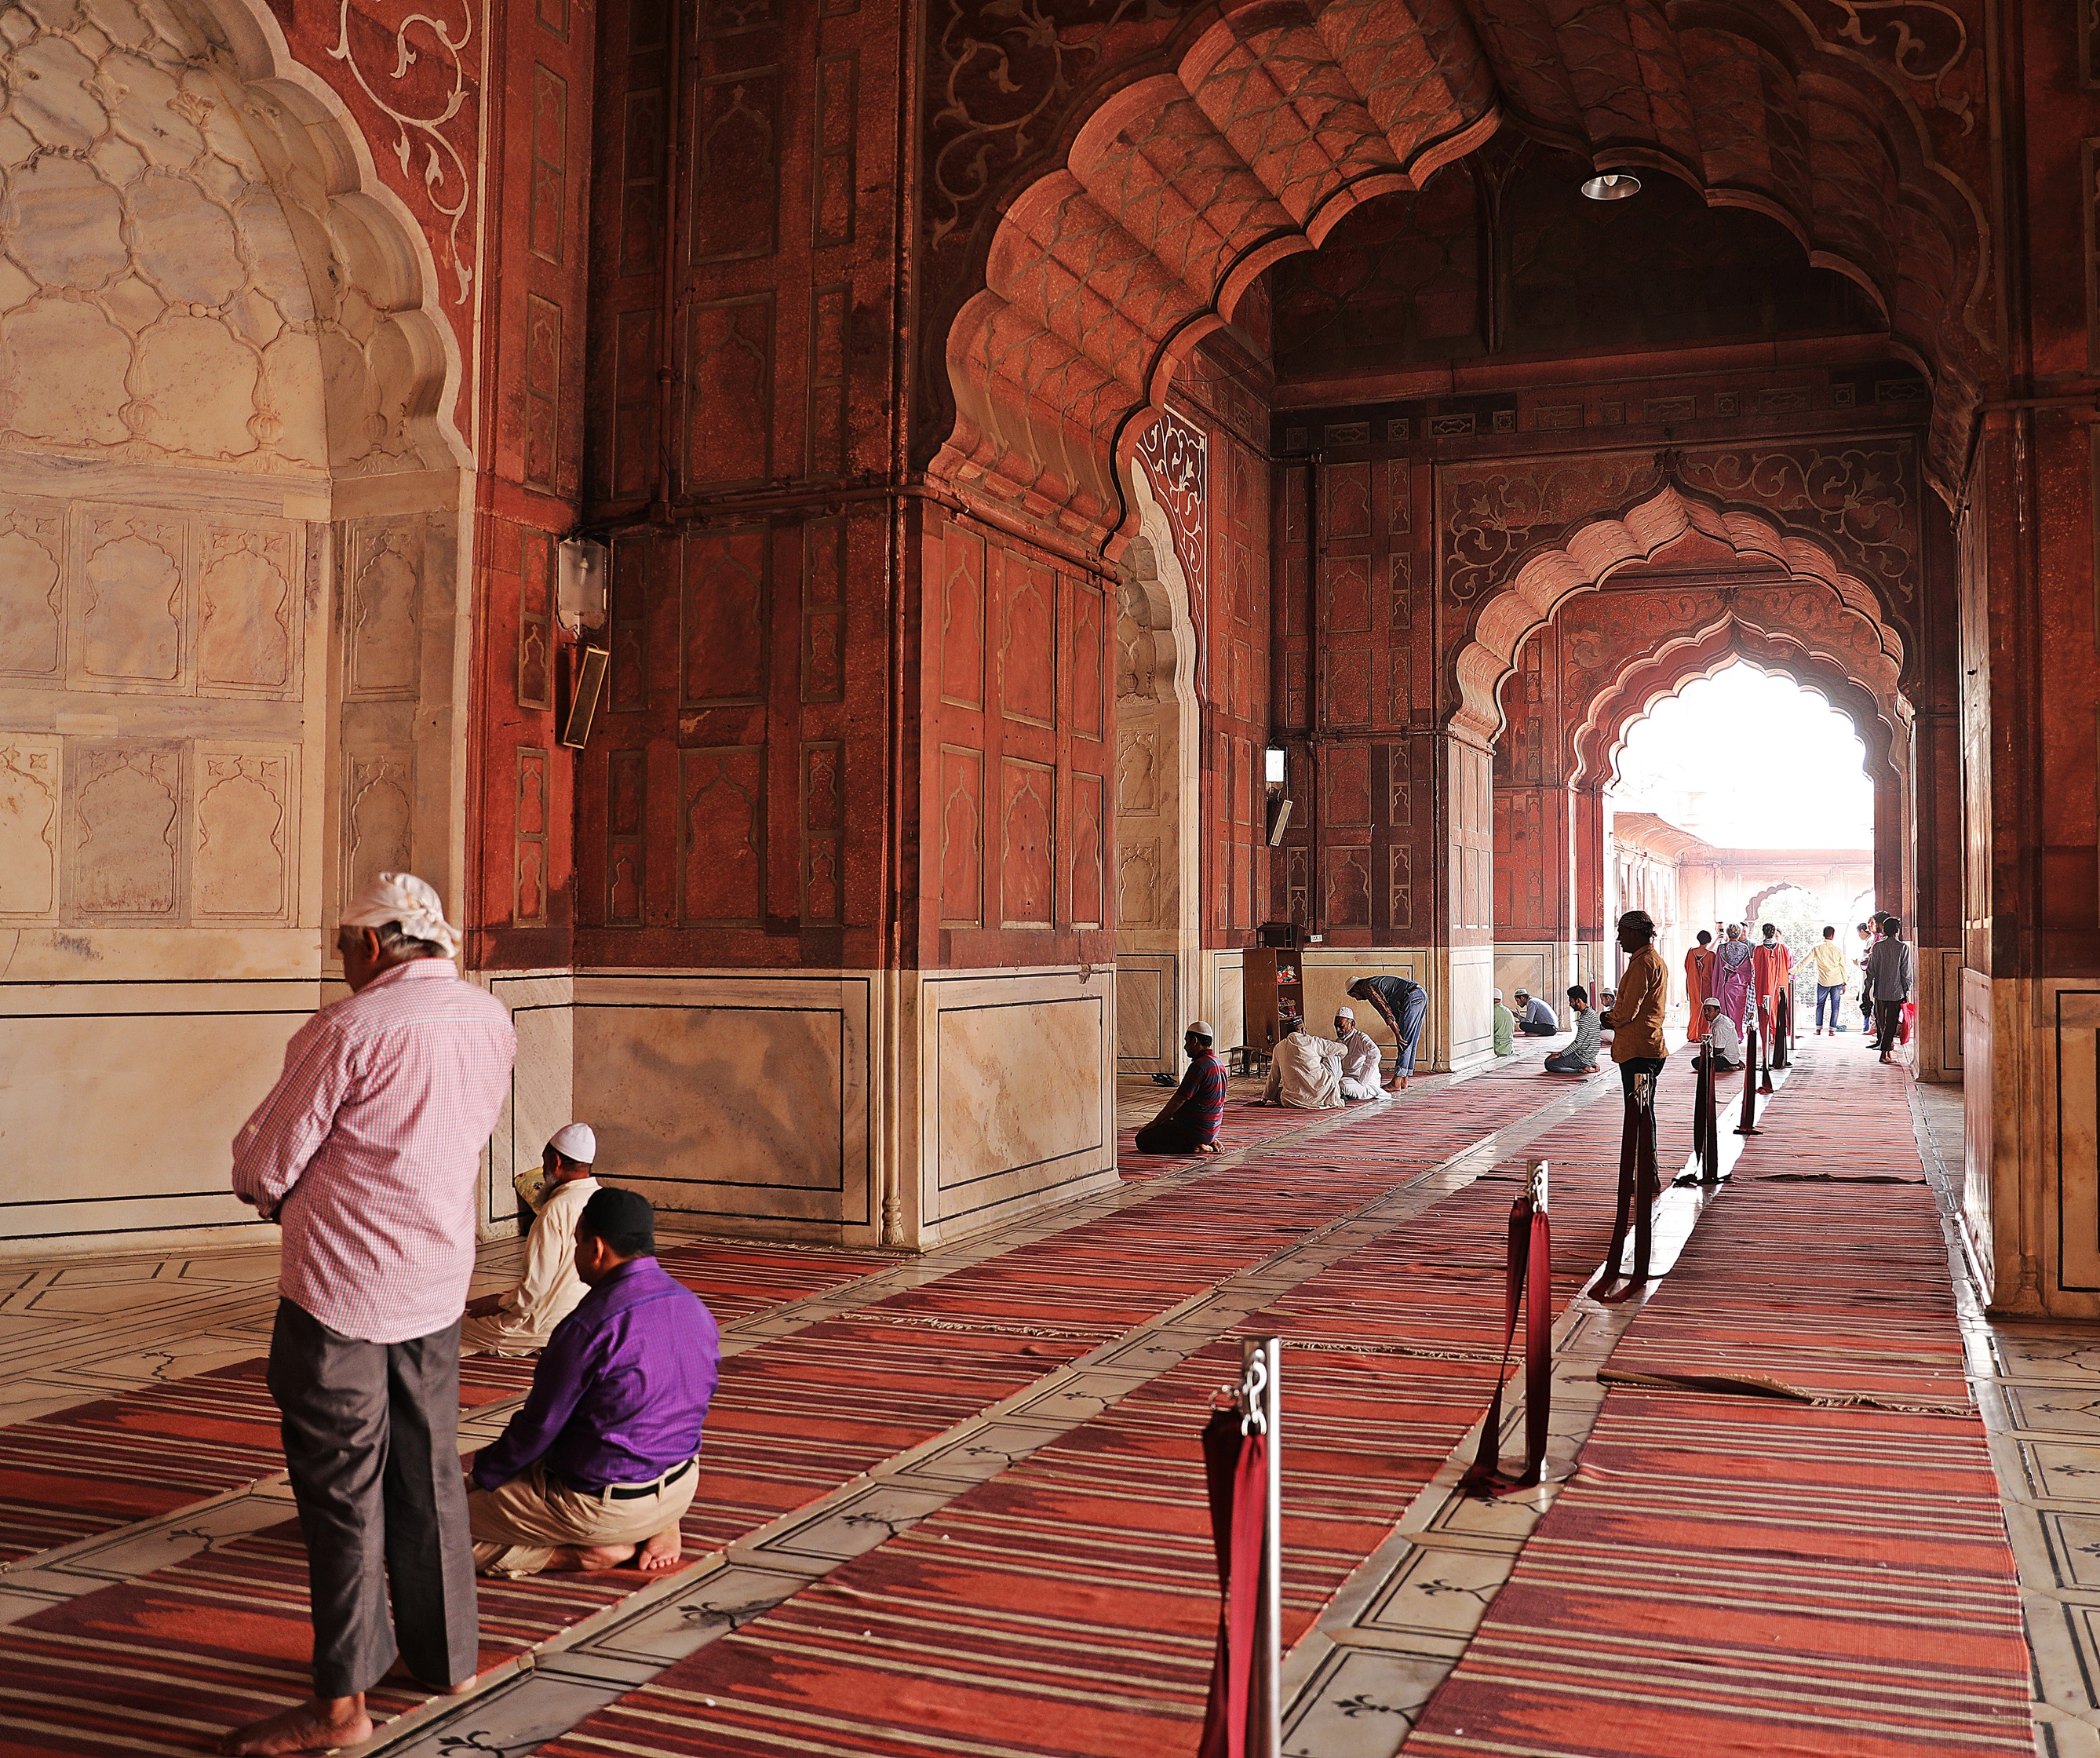 Prayer room, Jama Masjid, Delhi